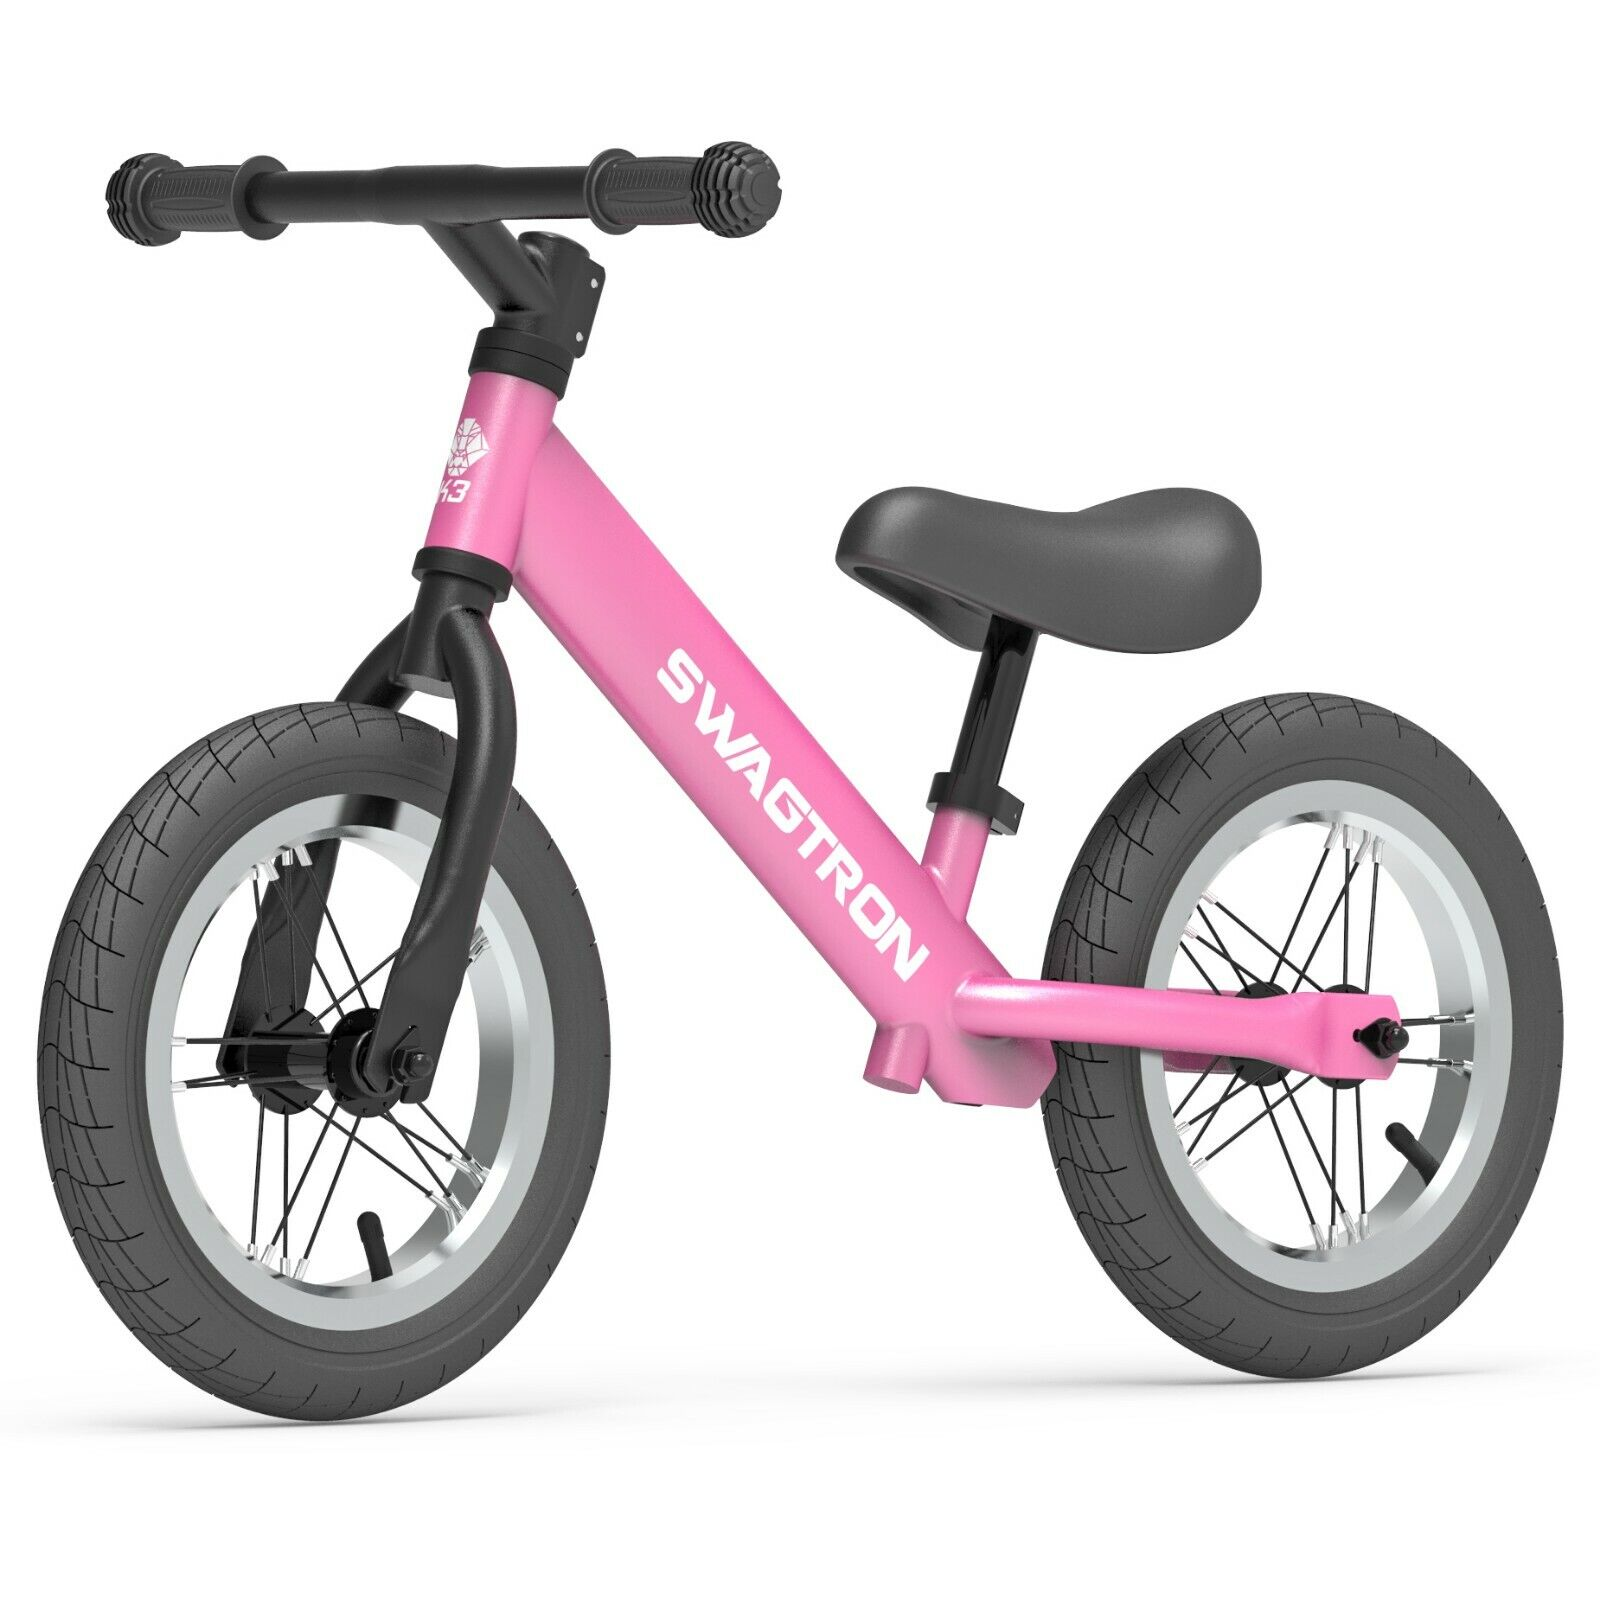 Swagtron Swagger 8 Folding Electric Scooter Pink